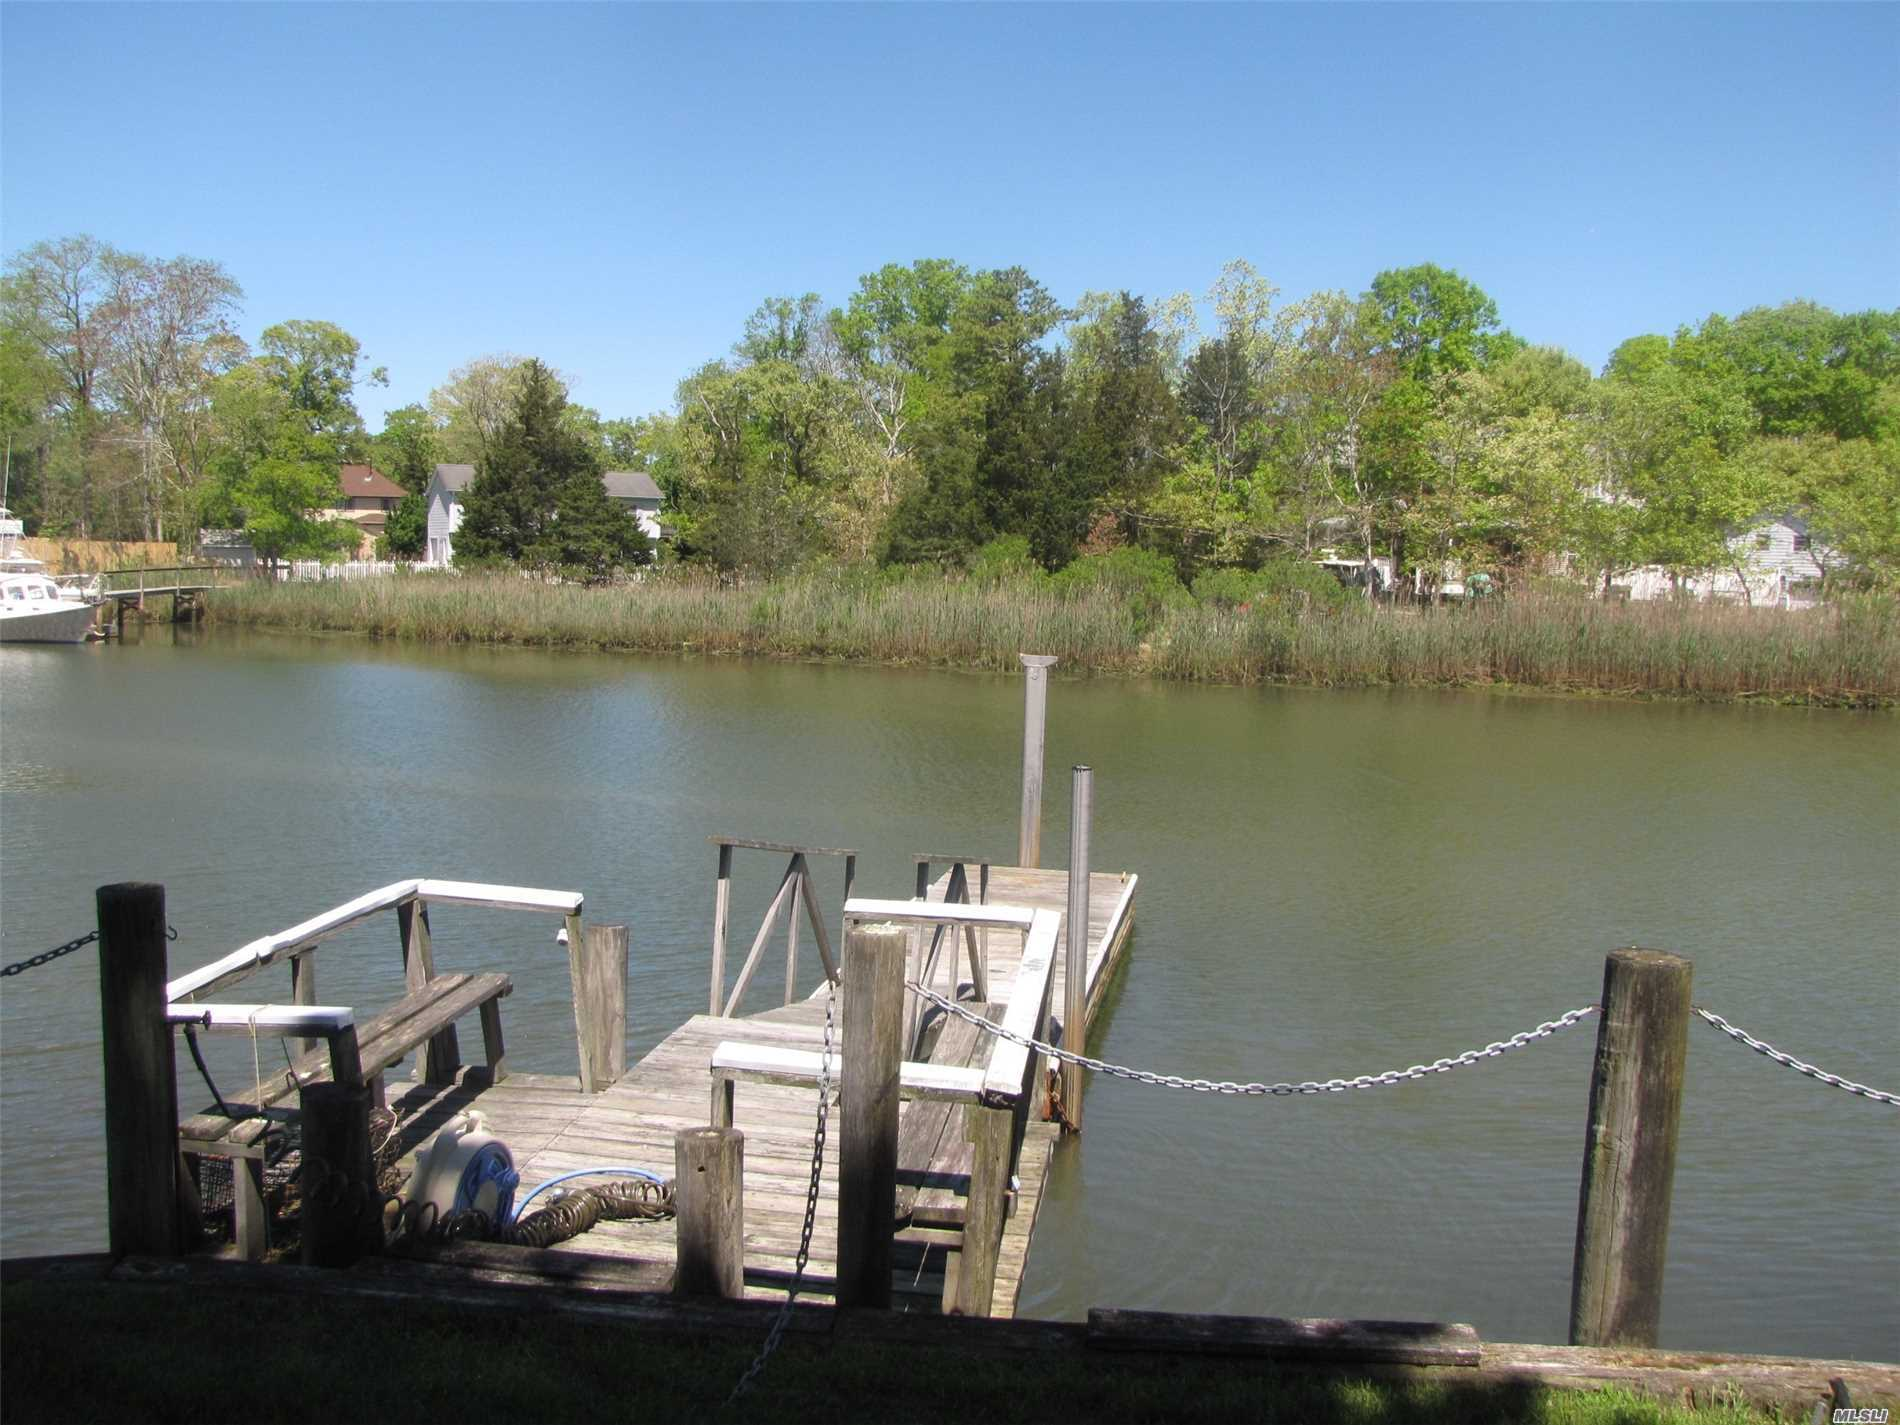 Pristine Waterfront Cottage Renovated 4 Years Ago. Features Open Plan With Quartz Kitchen Counters, New Bath And 2 Bedrooms. Walk Up Attic Ready For Expansion. Deep Waterfront With Dock For Your Yacht. Just Listed In Time For Summer Enjoyment $699, 000.